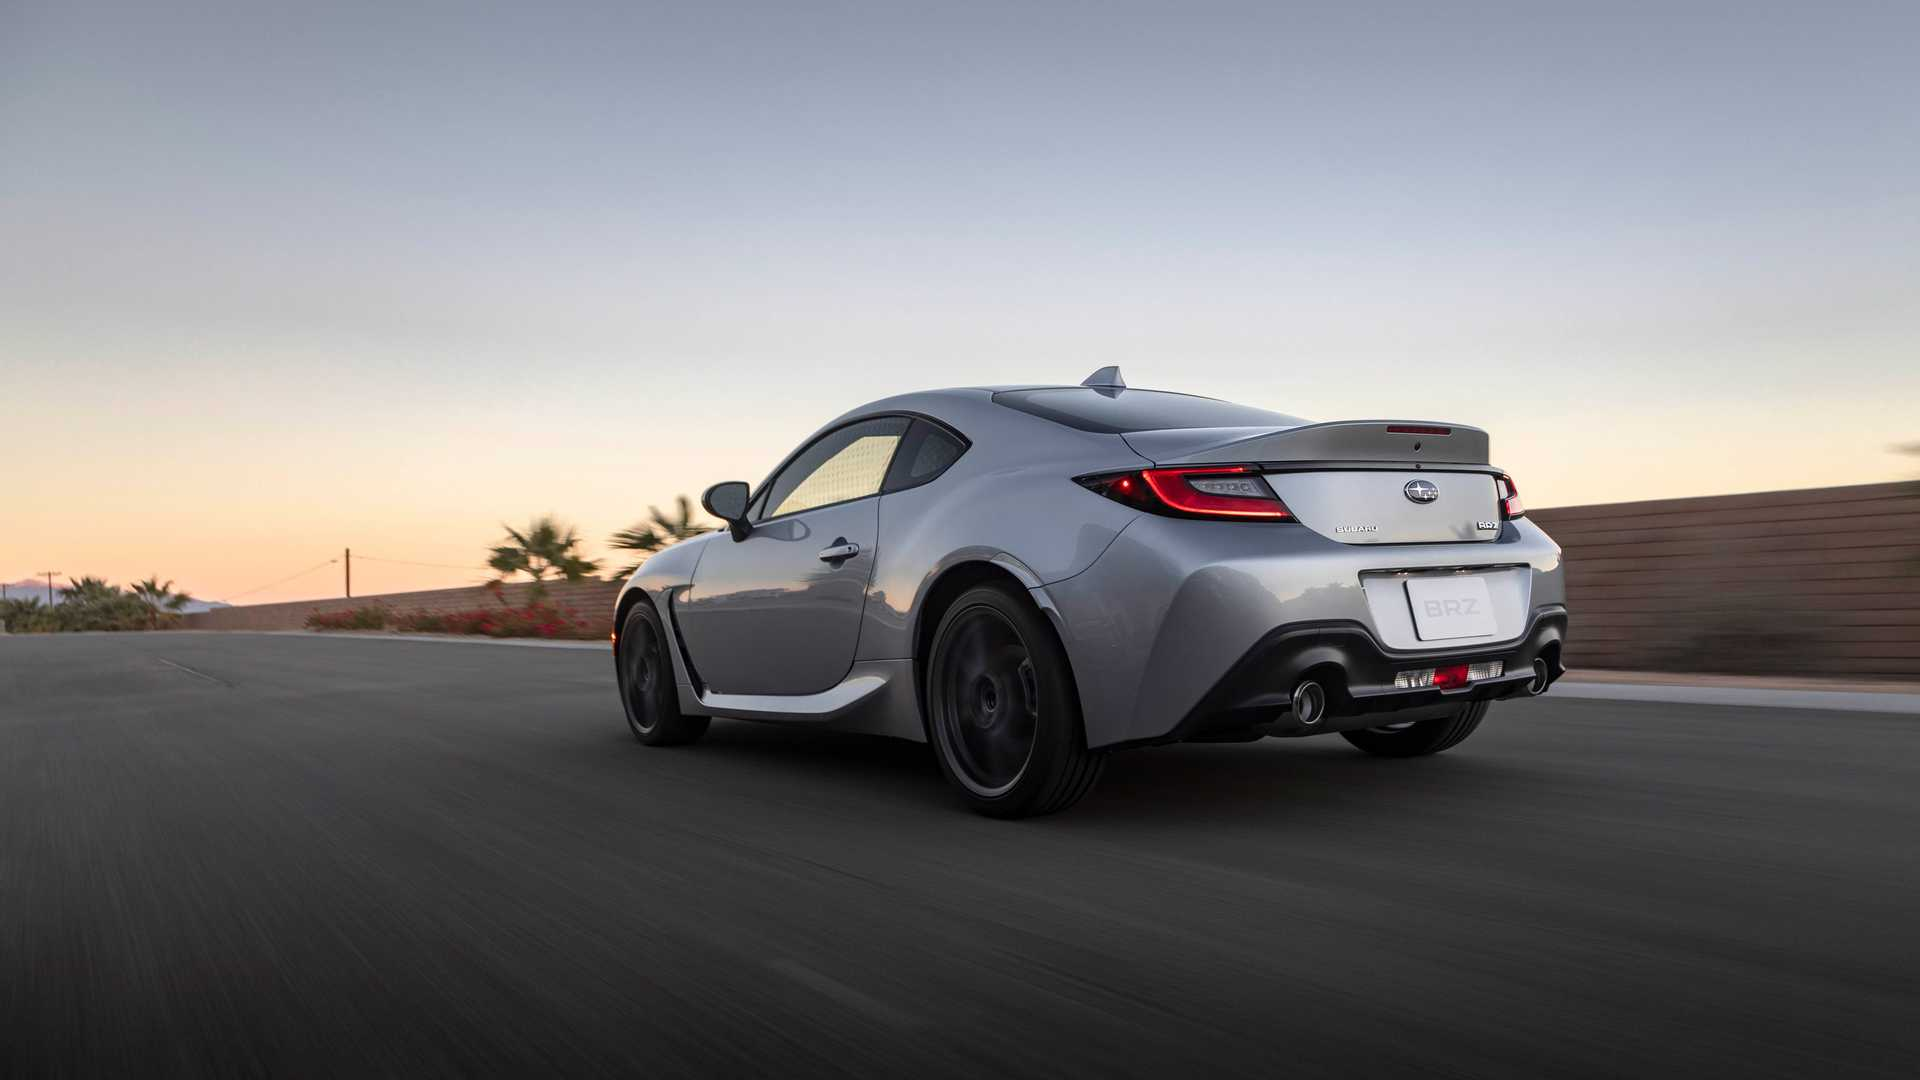 2022 subaru brz: full gallery, specs and test drive video